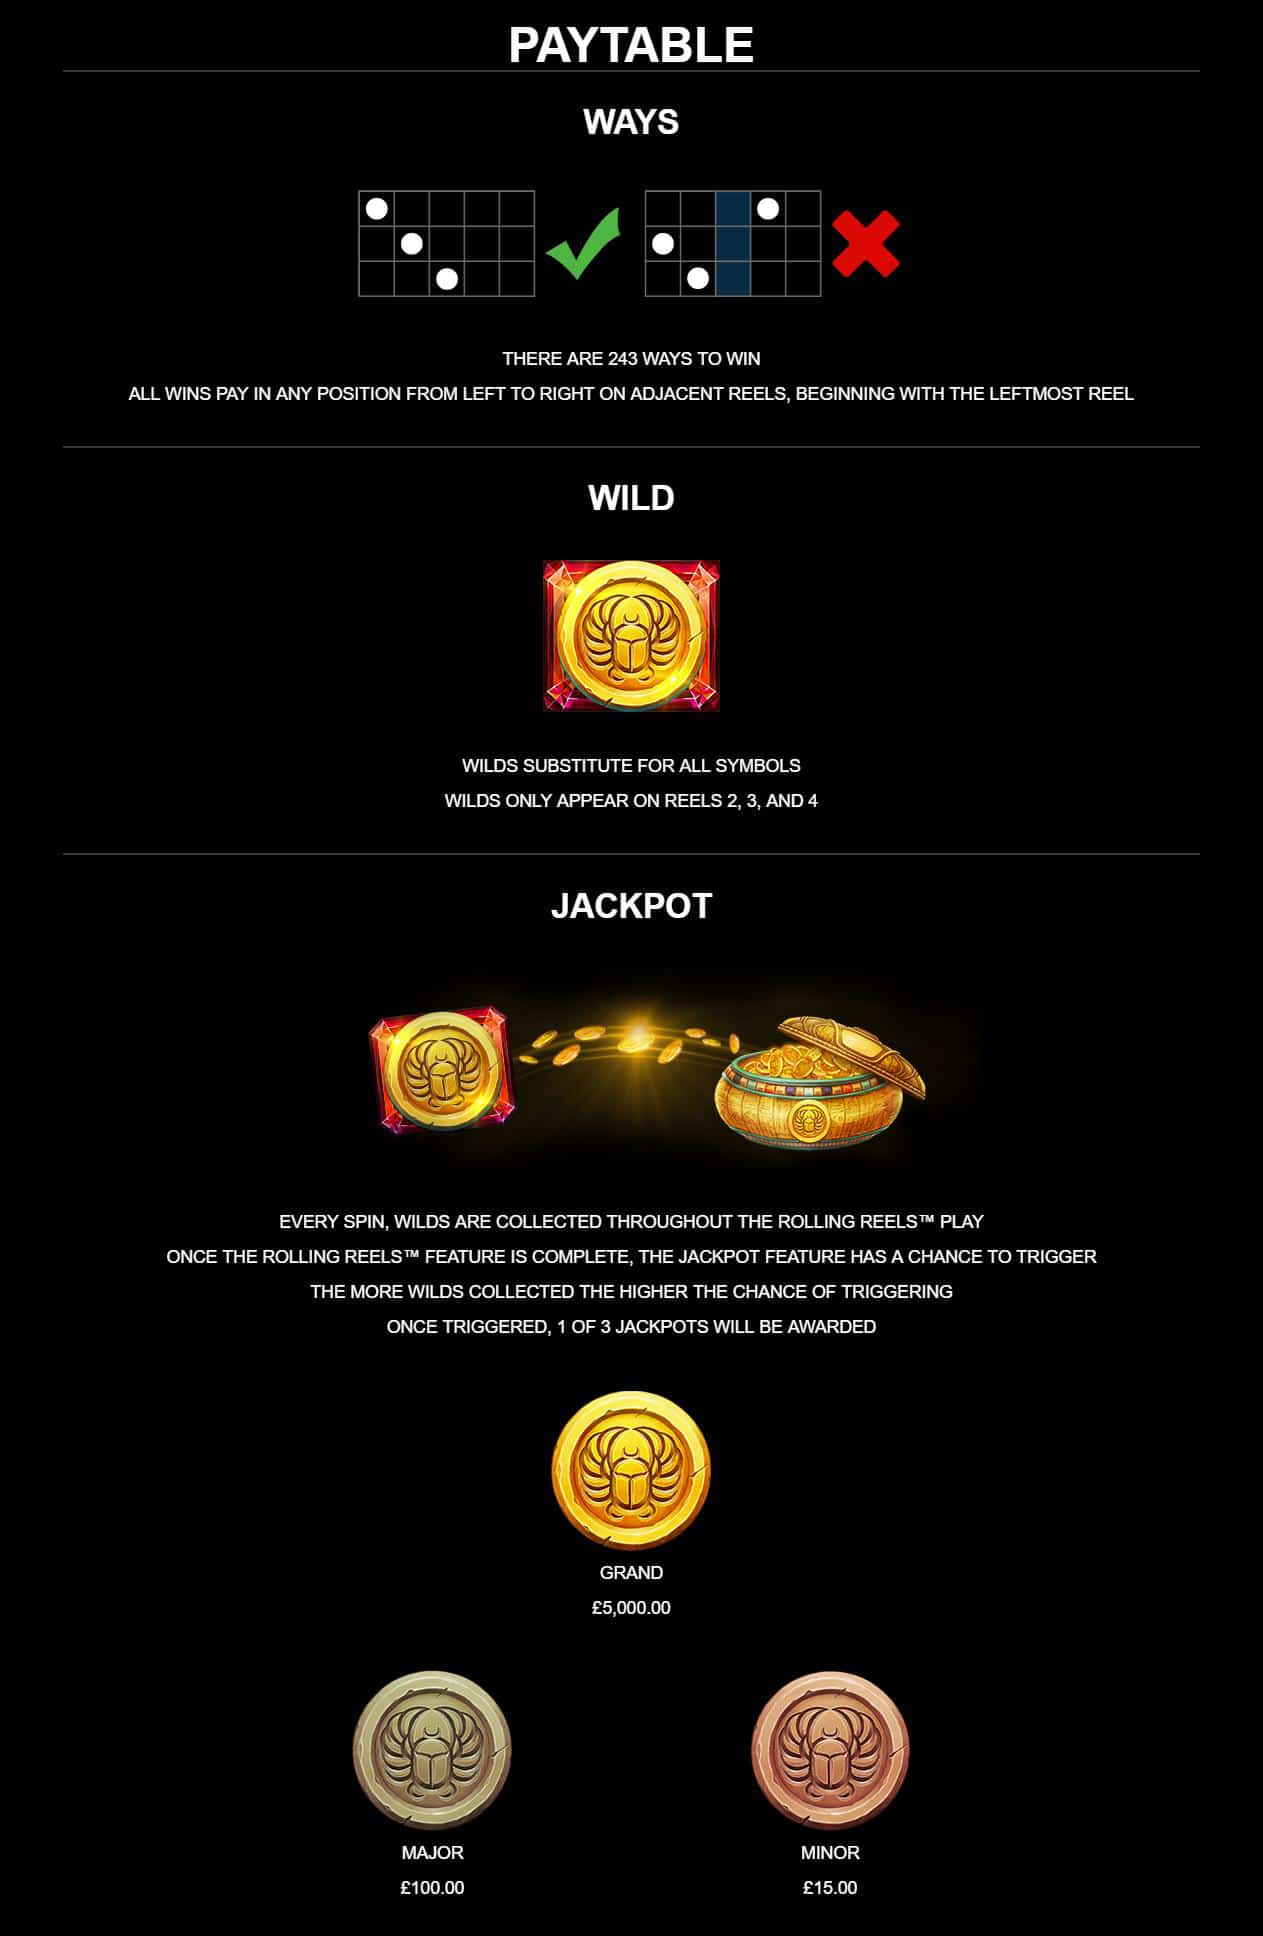 This is an image from the paytable of the Lara Croft Temples and Tombs slot explaining the various special features, wilds and free spins of the game.